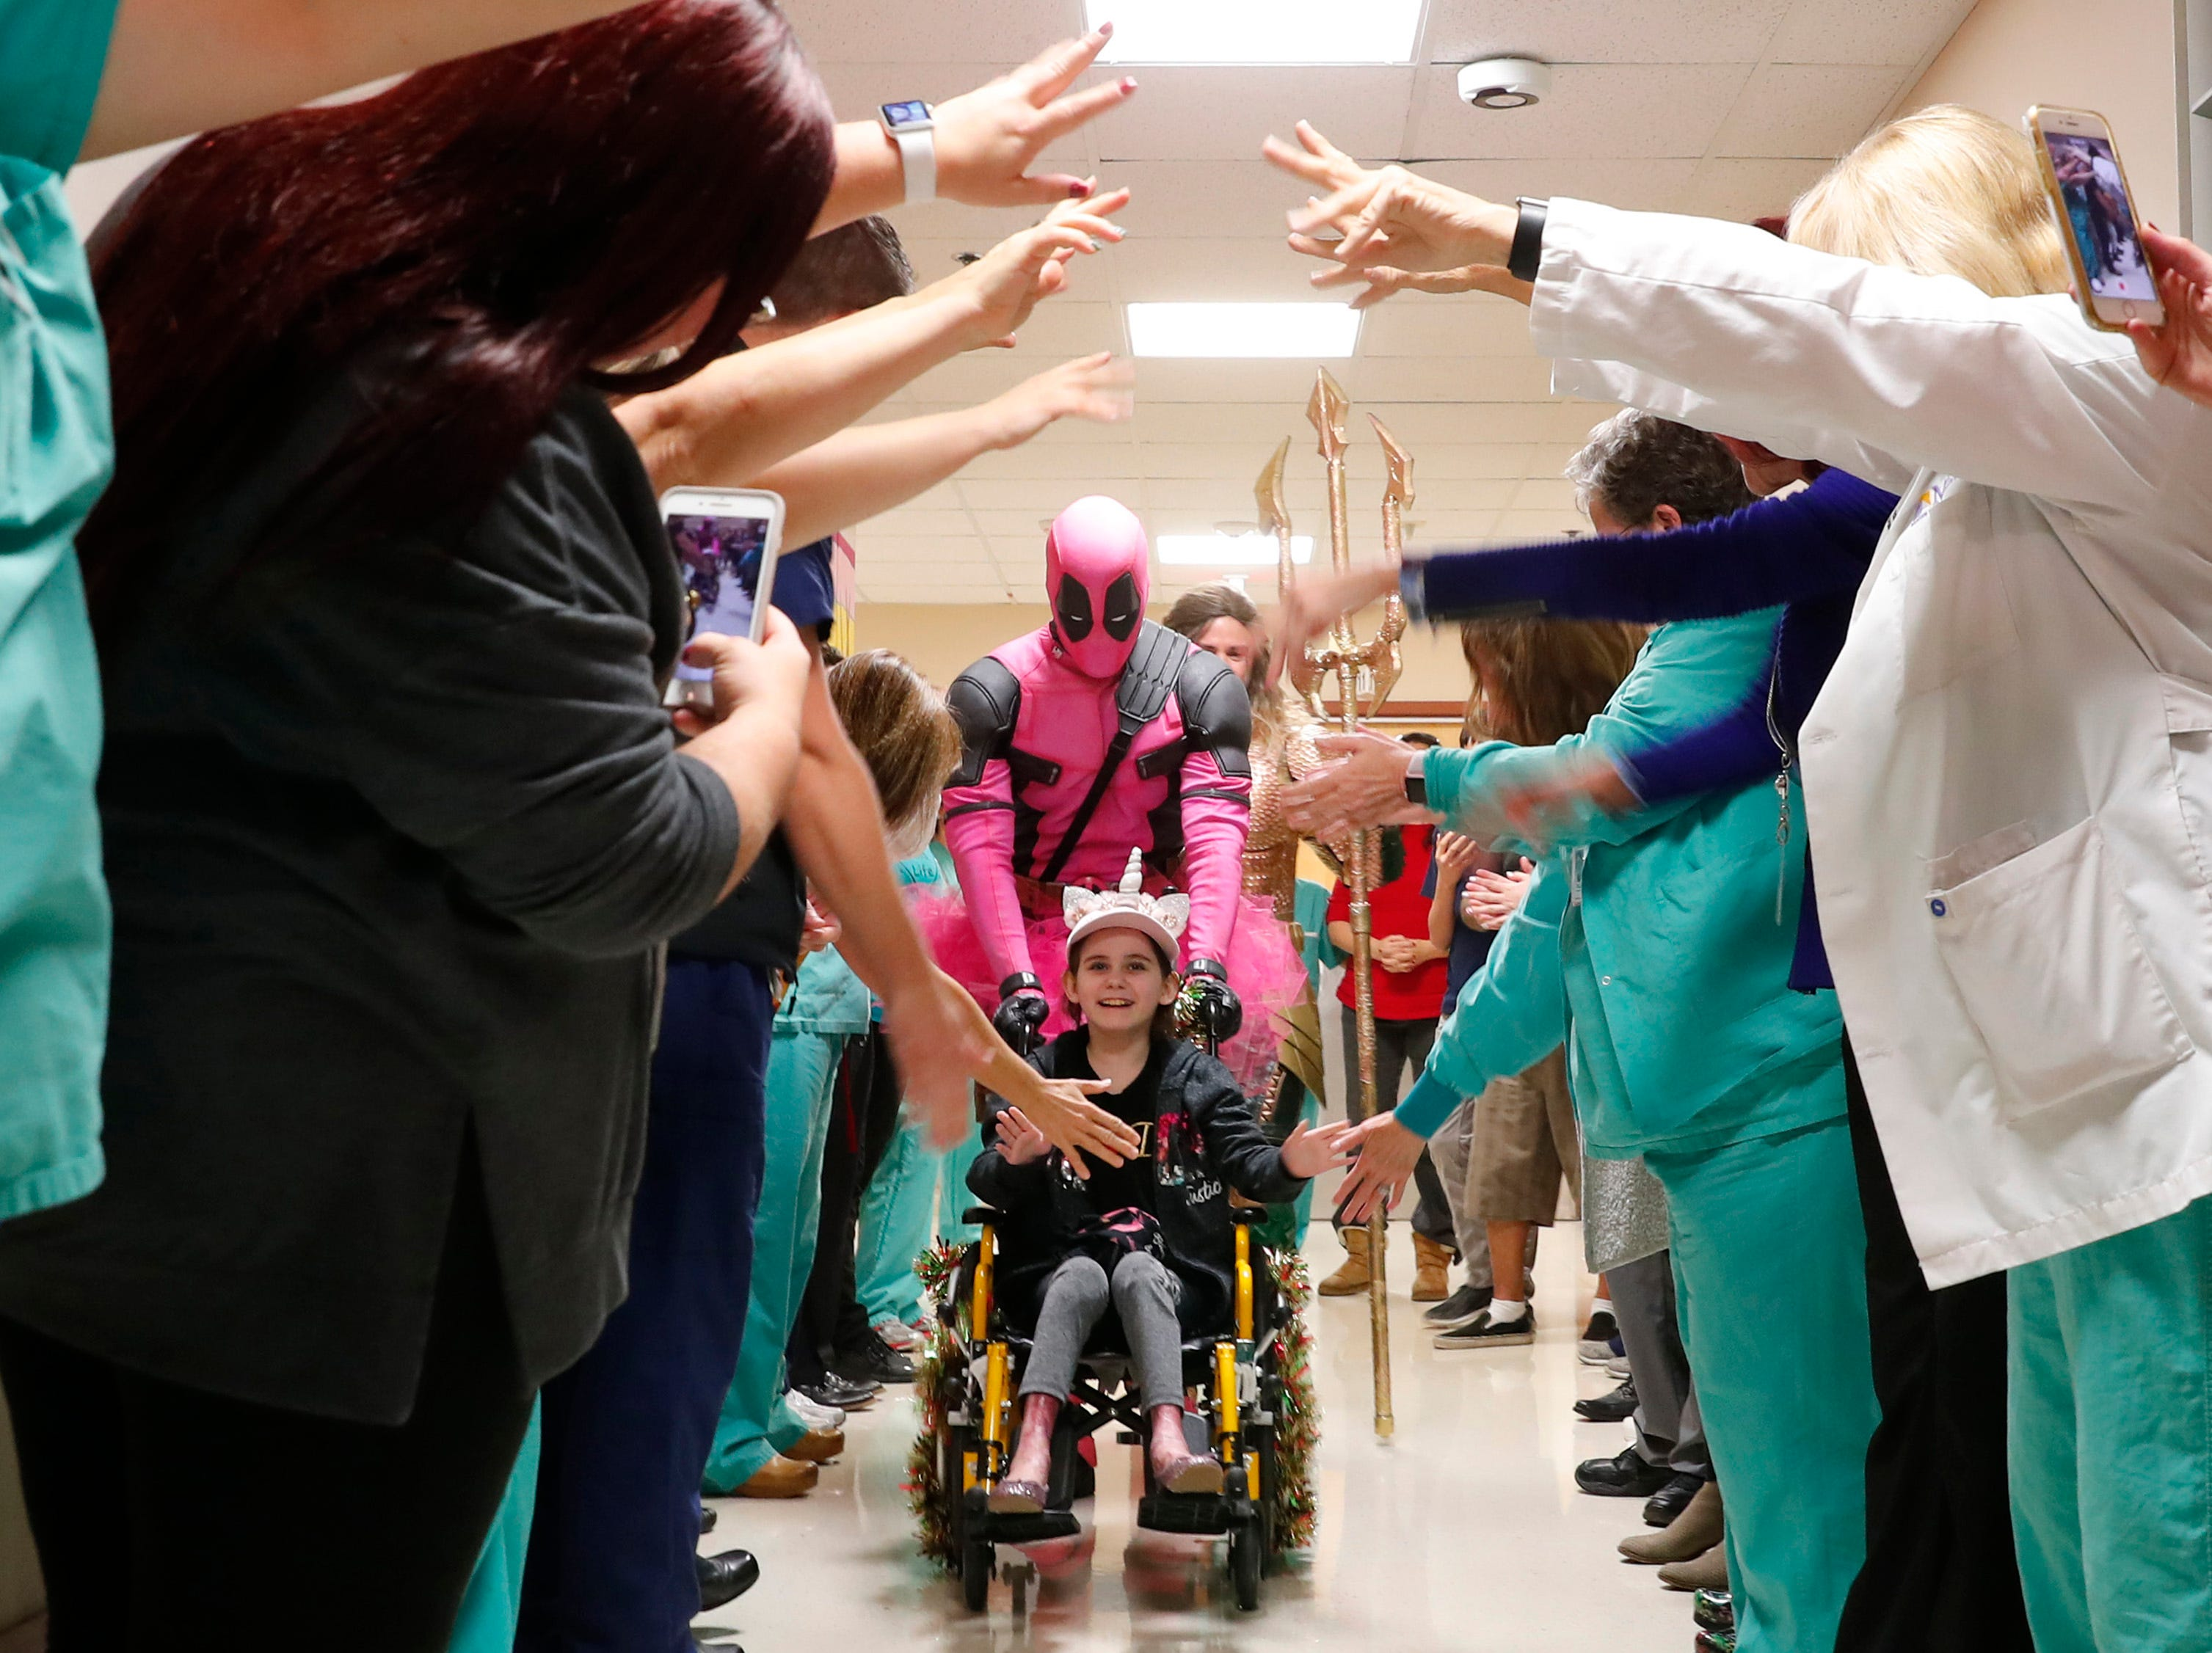 Nurses and staff say goodbye to Isabella McCune at the Arizona Burn Center in Phoenix December 17, 2018. The nine-year-old was being discharged nine months to the day after she was severely burned in a home accident in March.